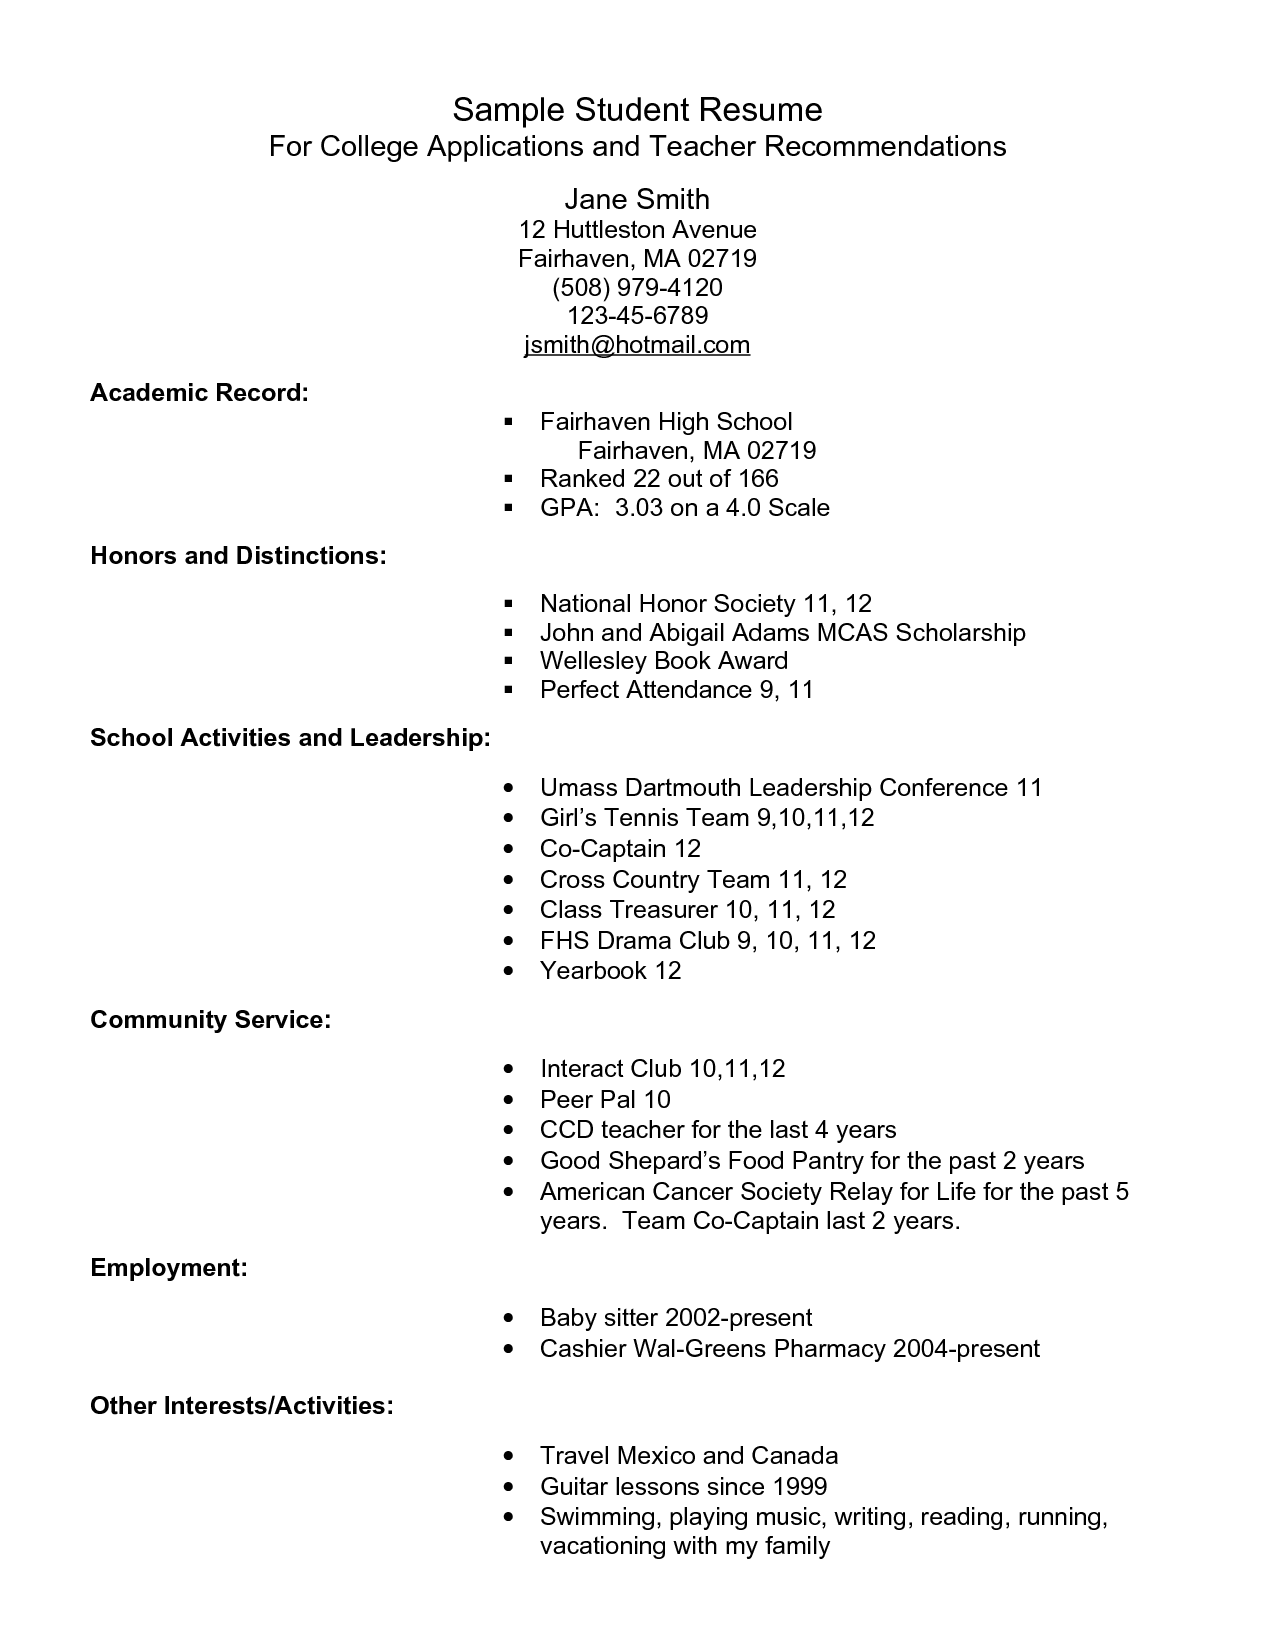 Example Resume For High School Students For College Applications Sample  Student Resume   PDF By Smapdi59  Resume Examples Pdf